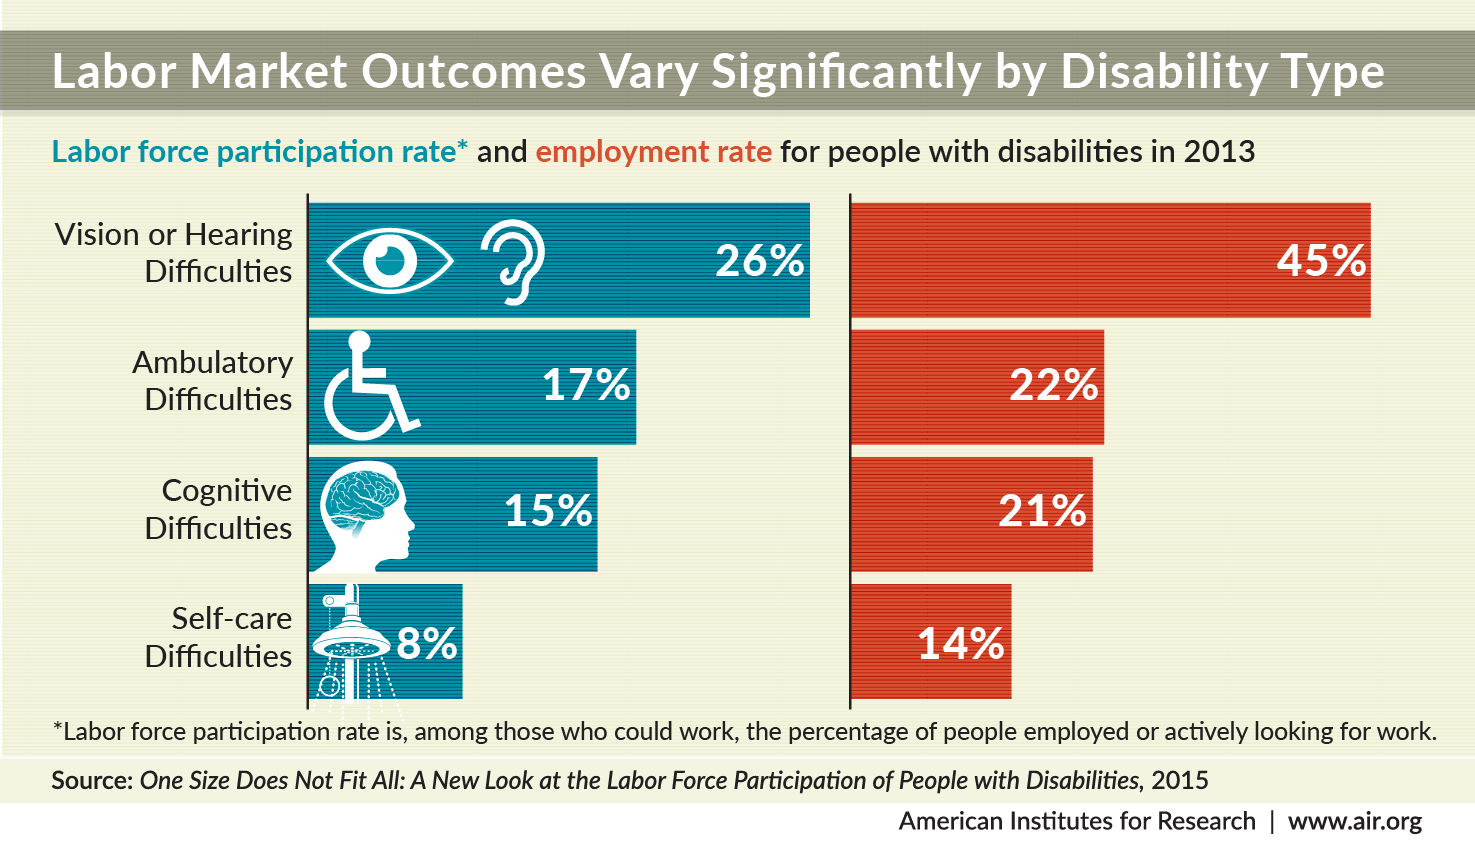 labor-force-participation-and-employment-rate-disability-type_cx-9-25-02